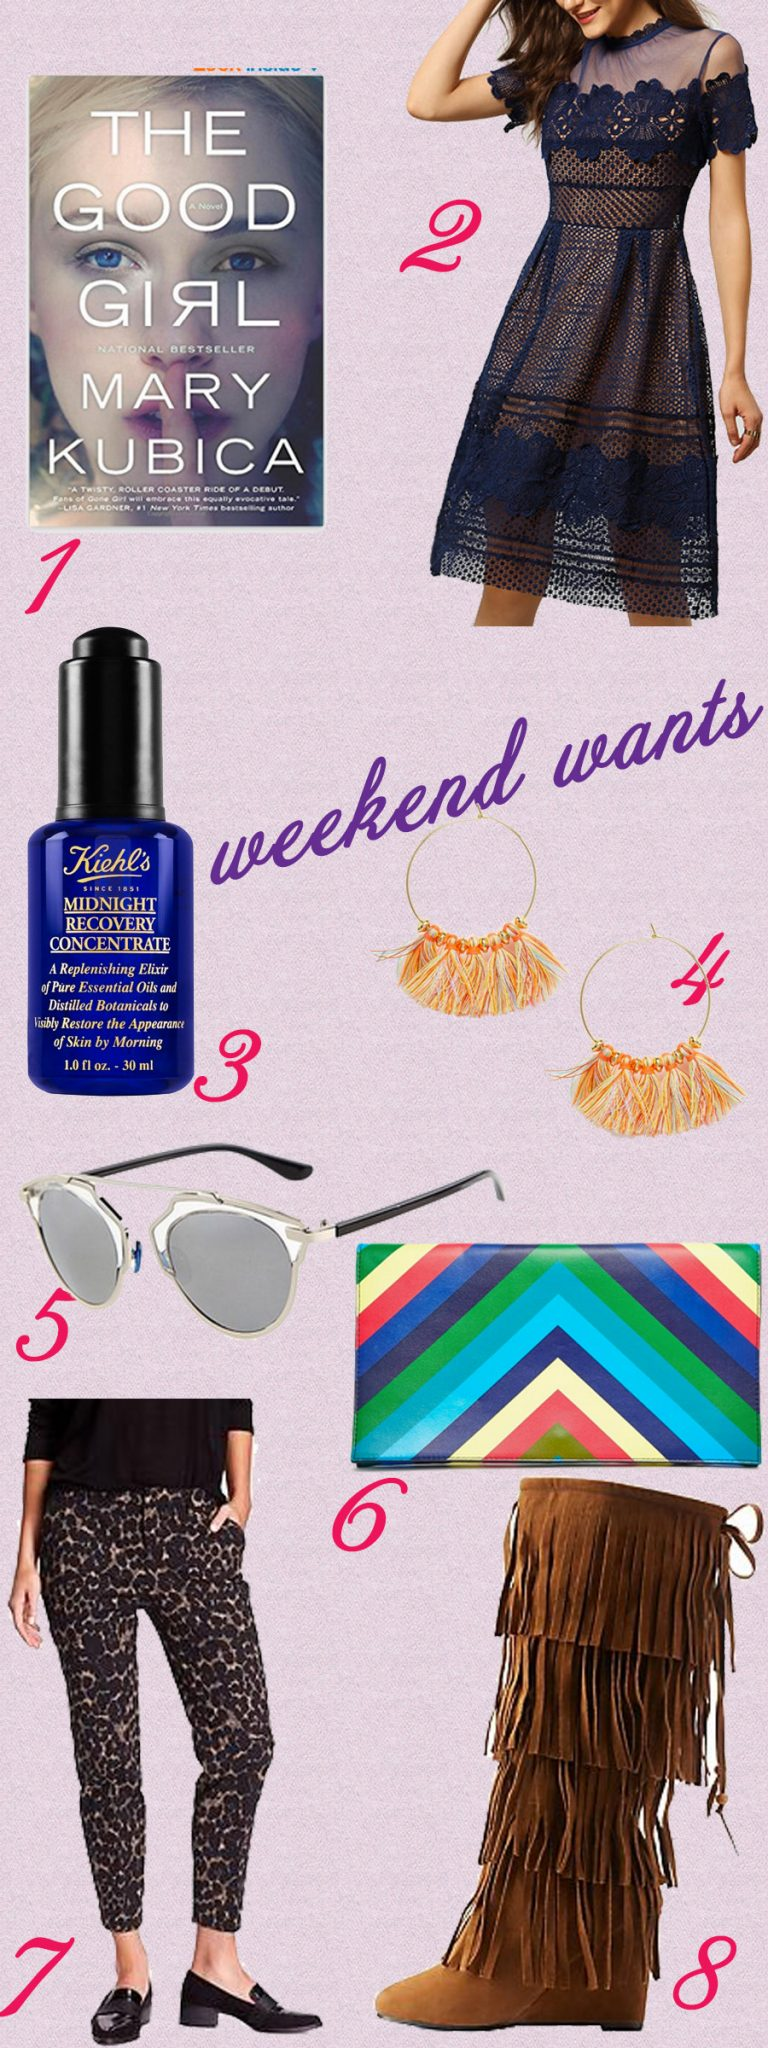 Weekend Wants - bargains I found during the blizzard 2016. www.glassofglam.com